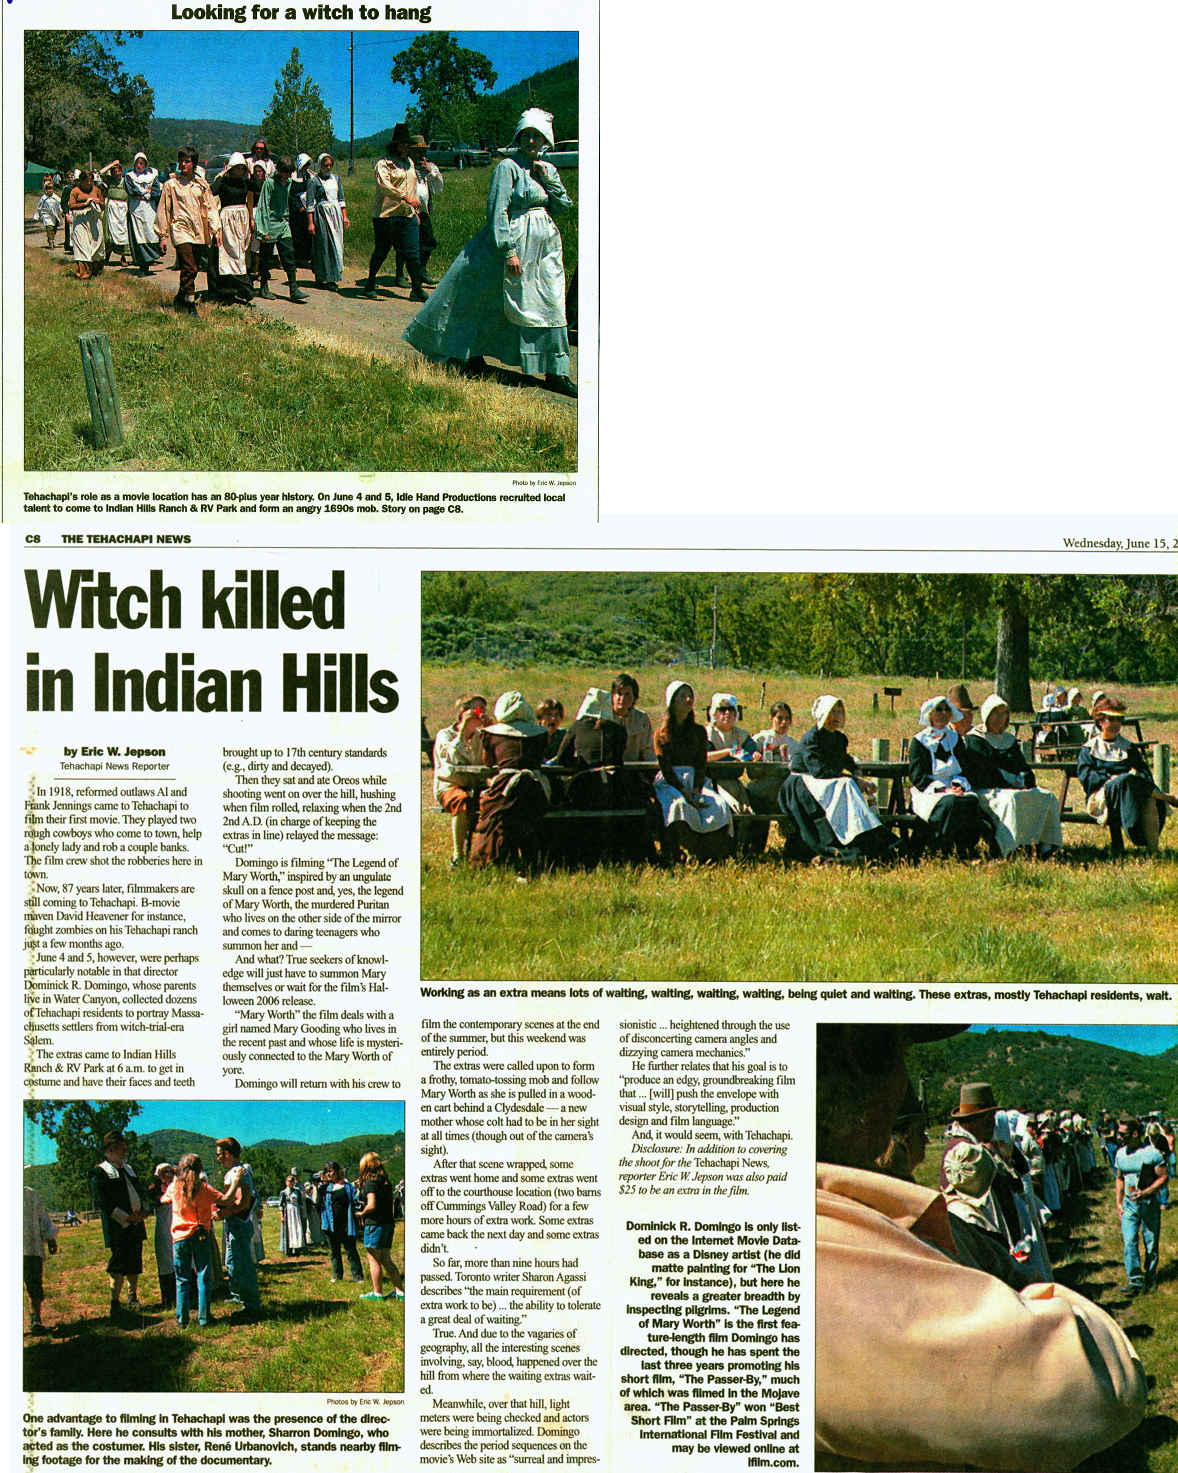 Bulletin Board- Indian Hill Ranch Information, News & Stories